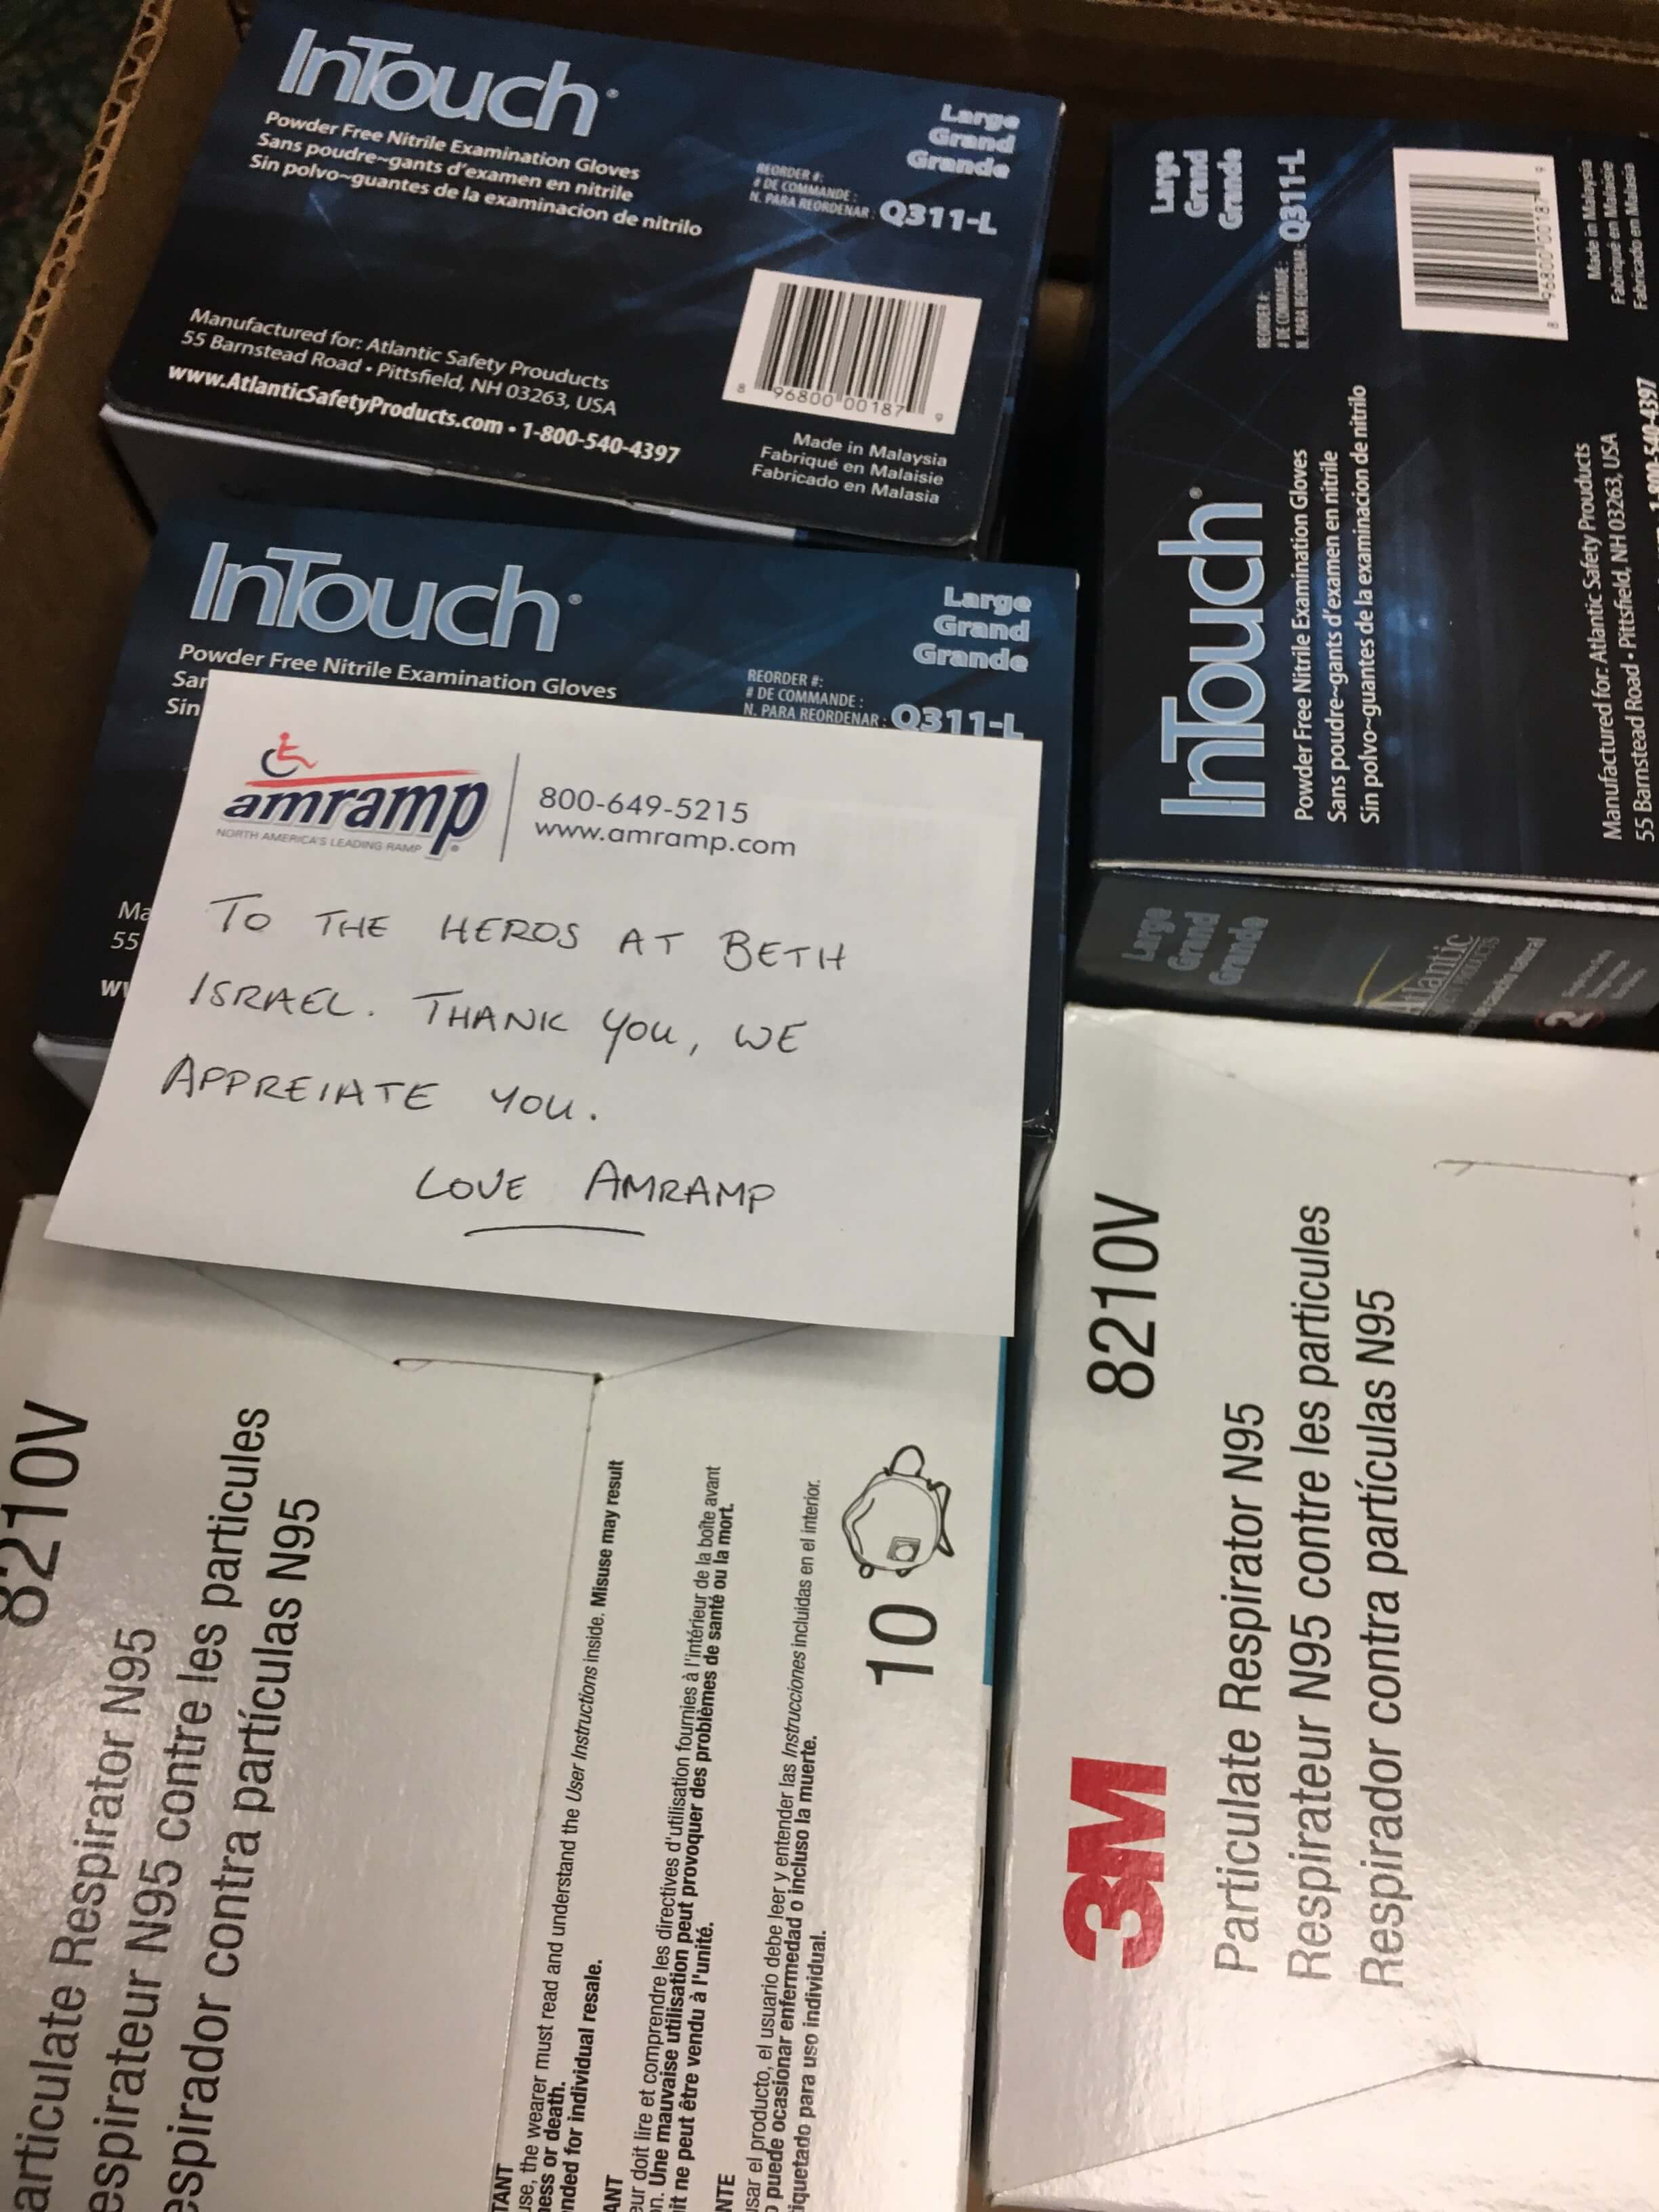 Box containing gloves and masks donated by Amramp to Beth Israel Hospital